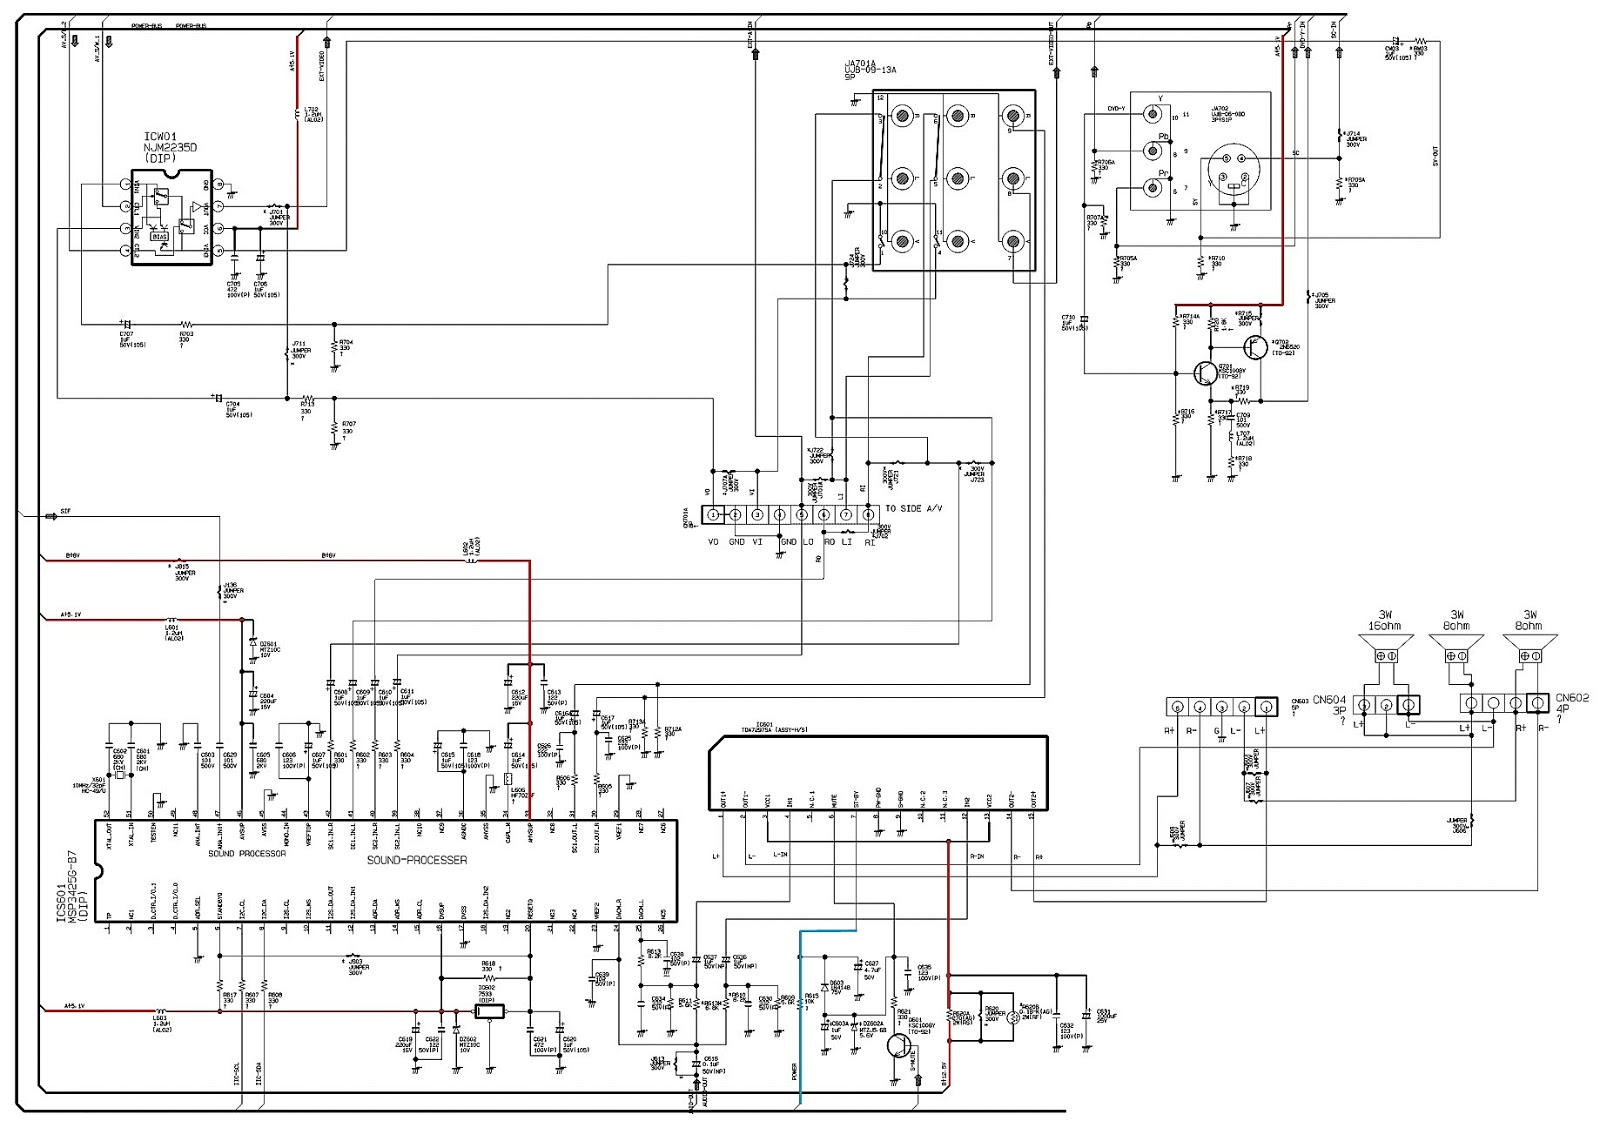 medium resolution of wiring diagram for receiver to samsung tv schematic diagram wiring diagram for receiver to samsung tv